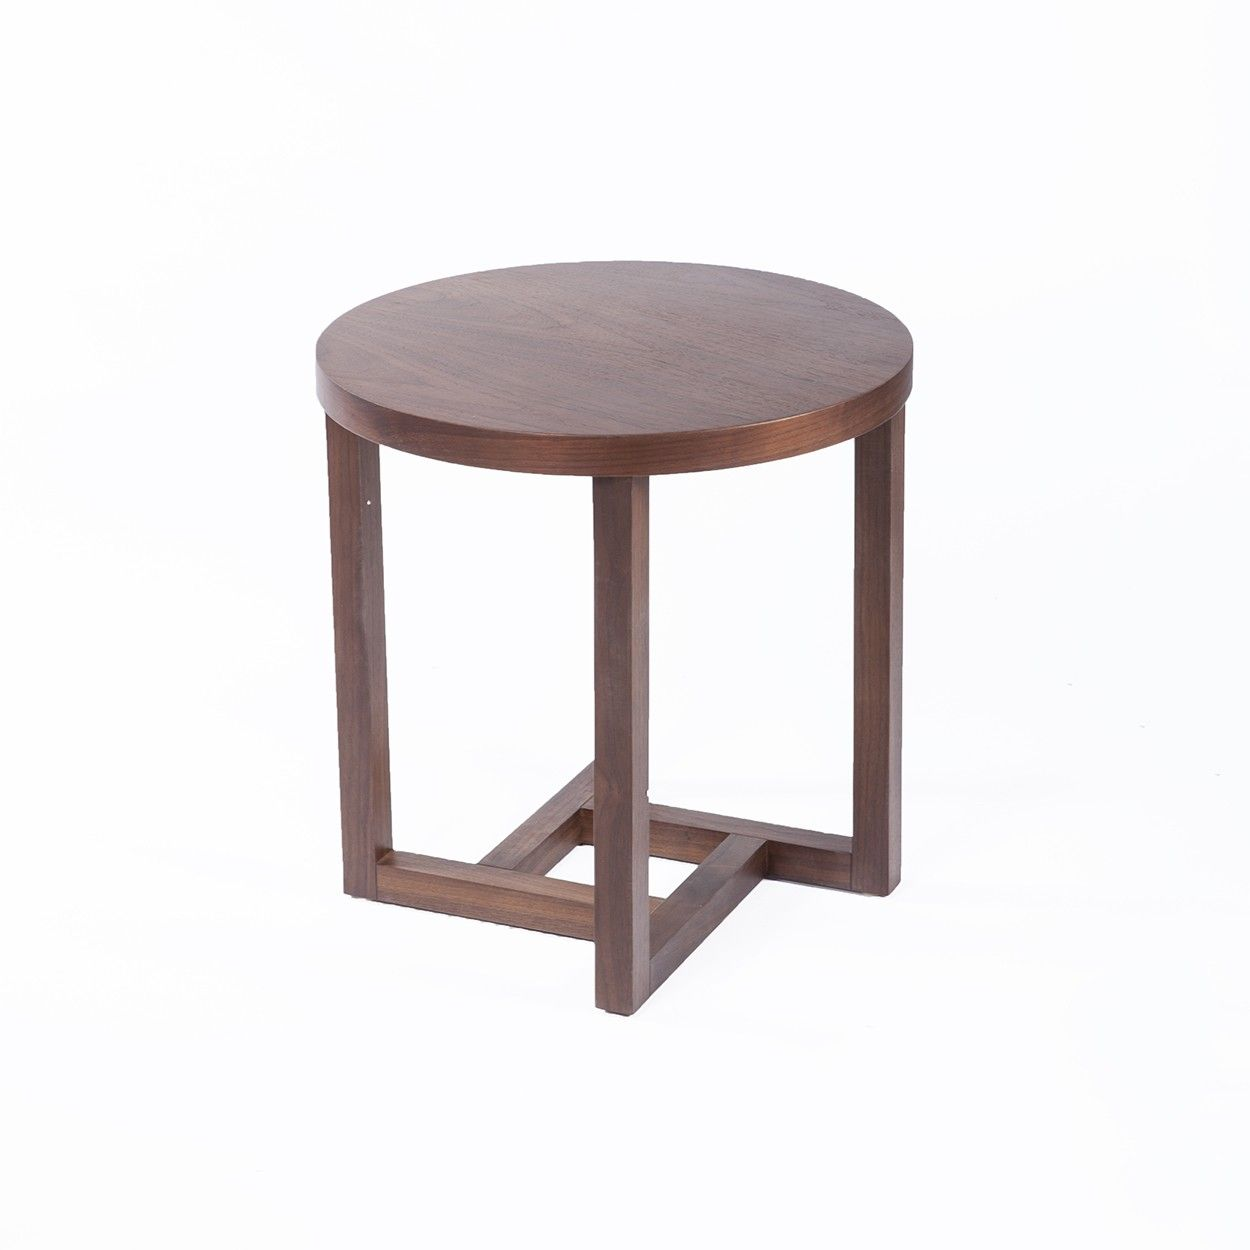 The Theodorus Side Table PICK UP ONLY